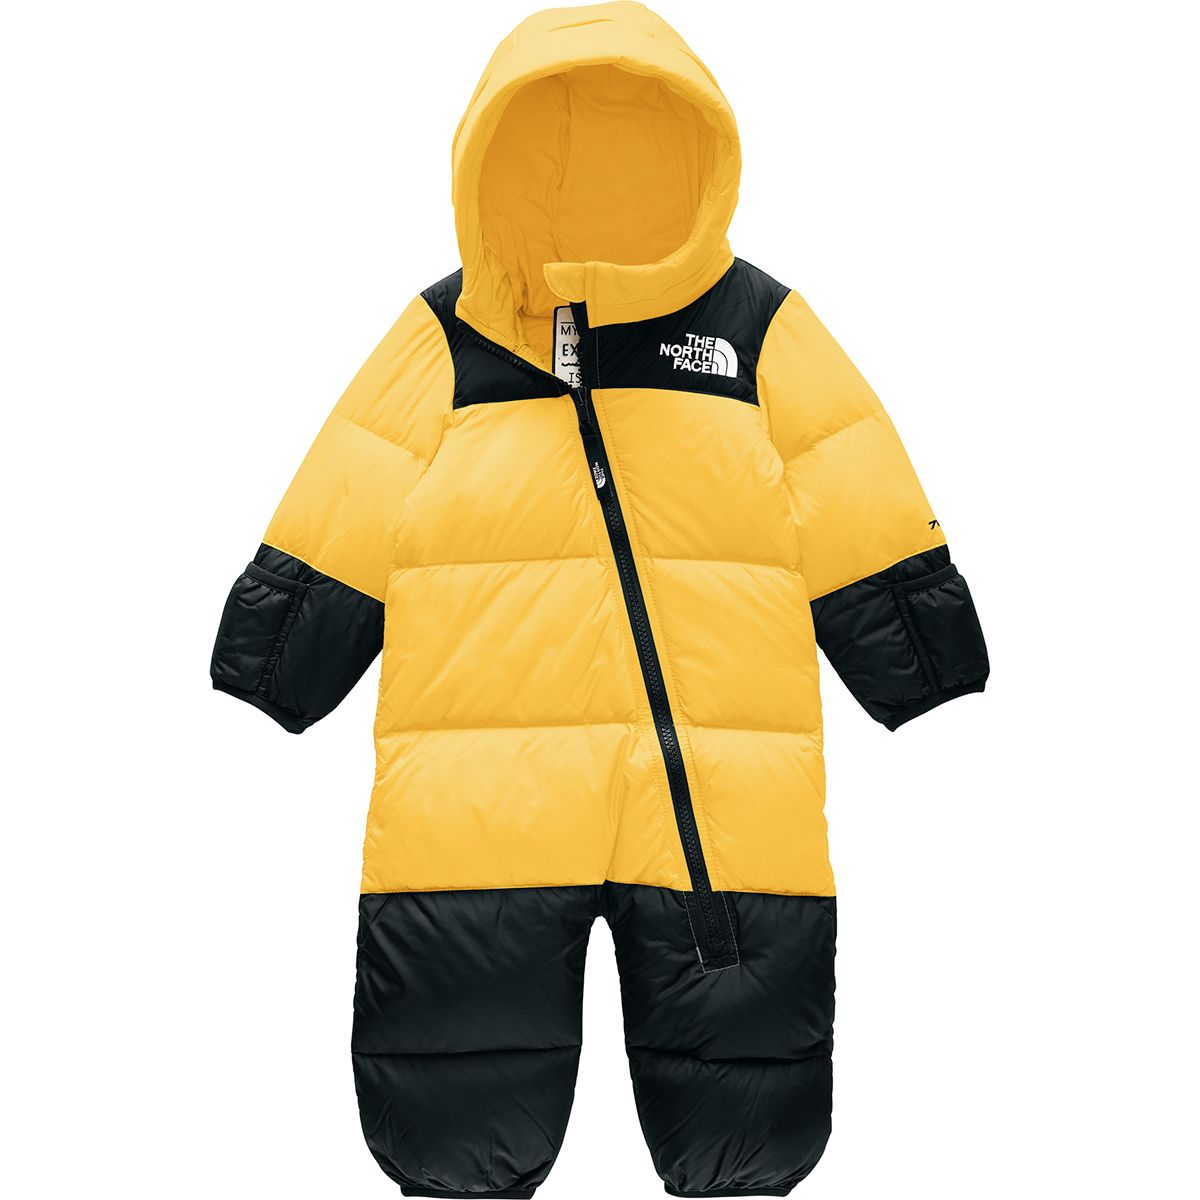 The North Face Nuptse One Piece Bunting Infant Boys